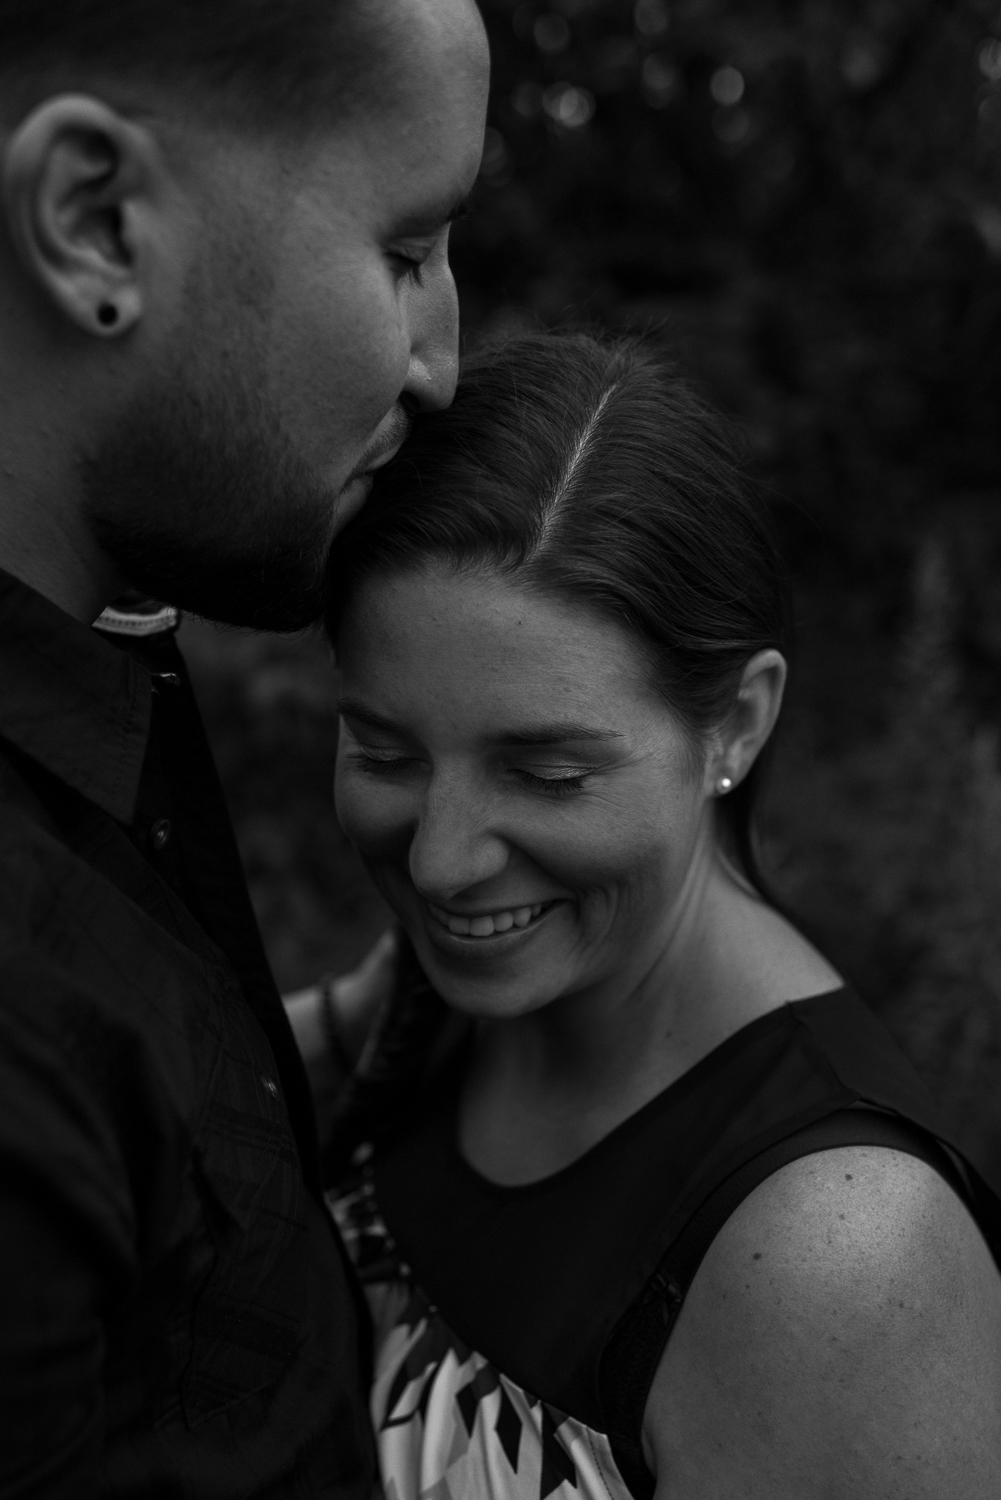 Engagement, couples photographer in Clarksville, TN - D. Phillips Photography